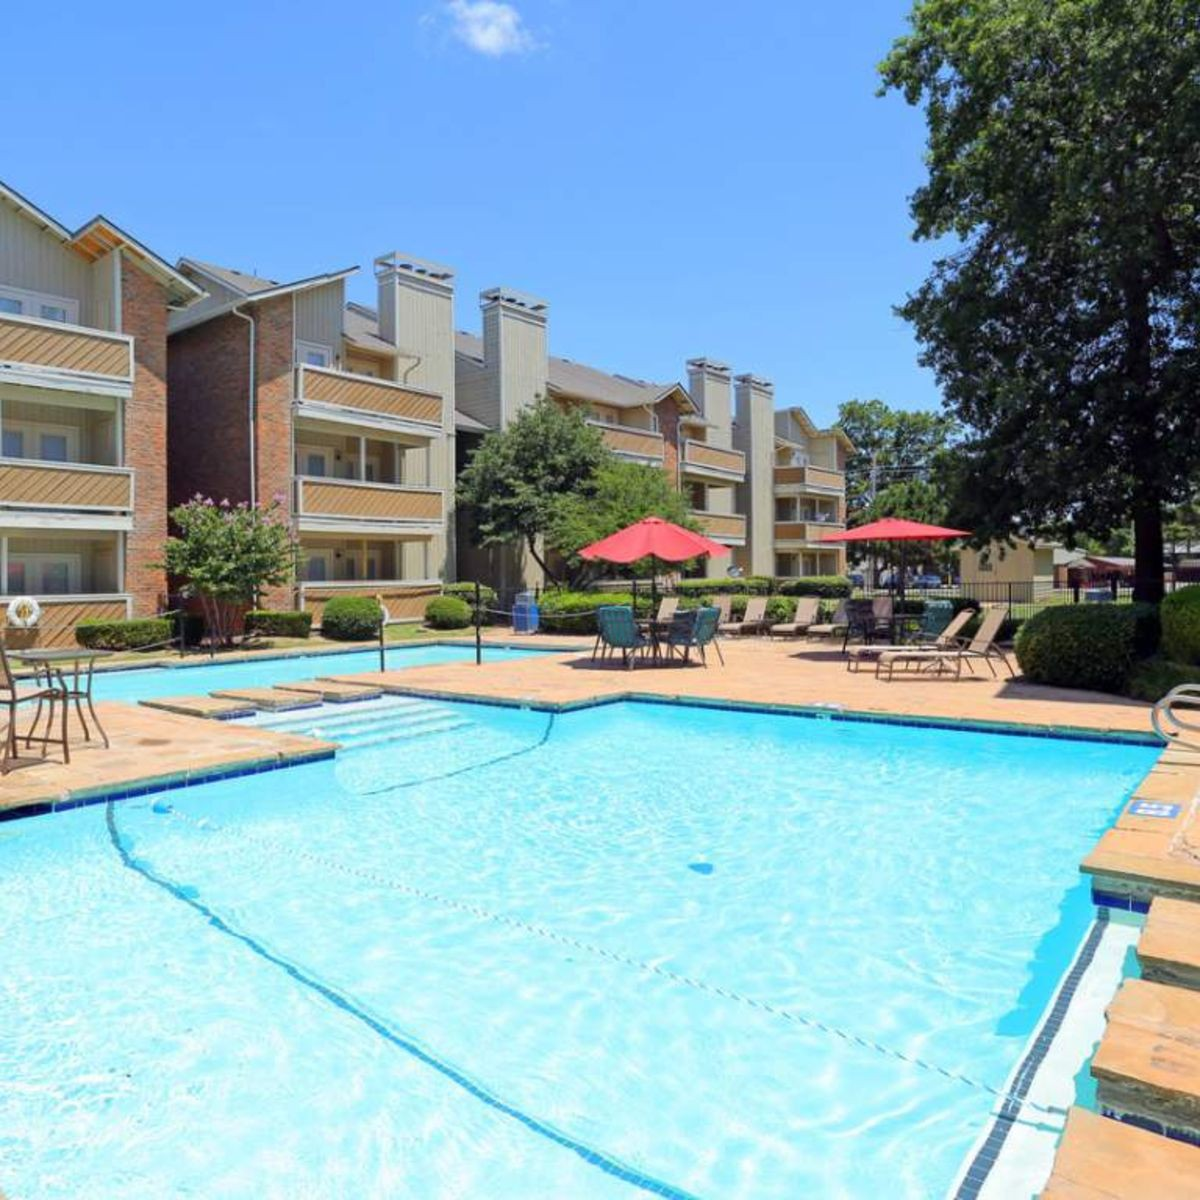 Apartments Near ORU Lincoln Glens for Oral Roberts University Students in Tulsa, OK